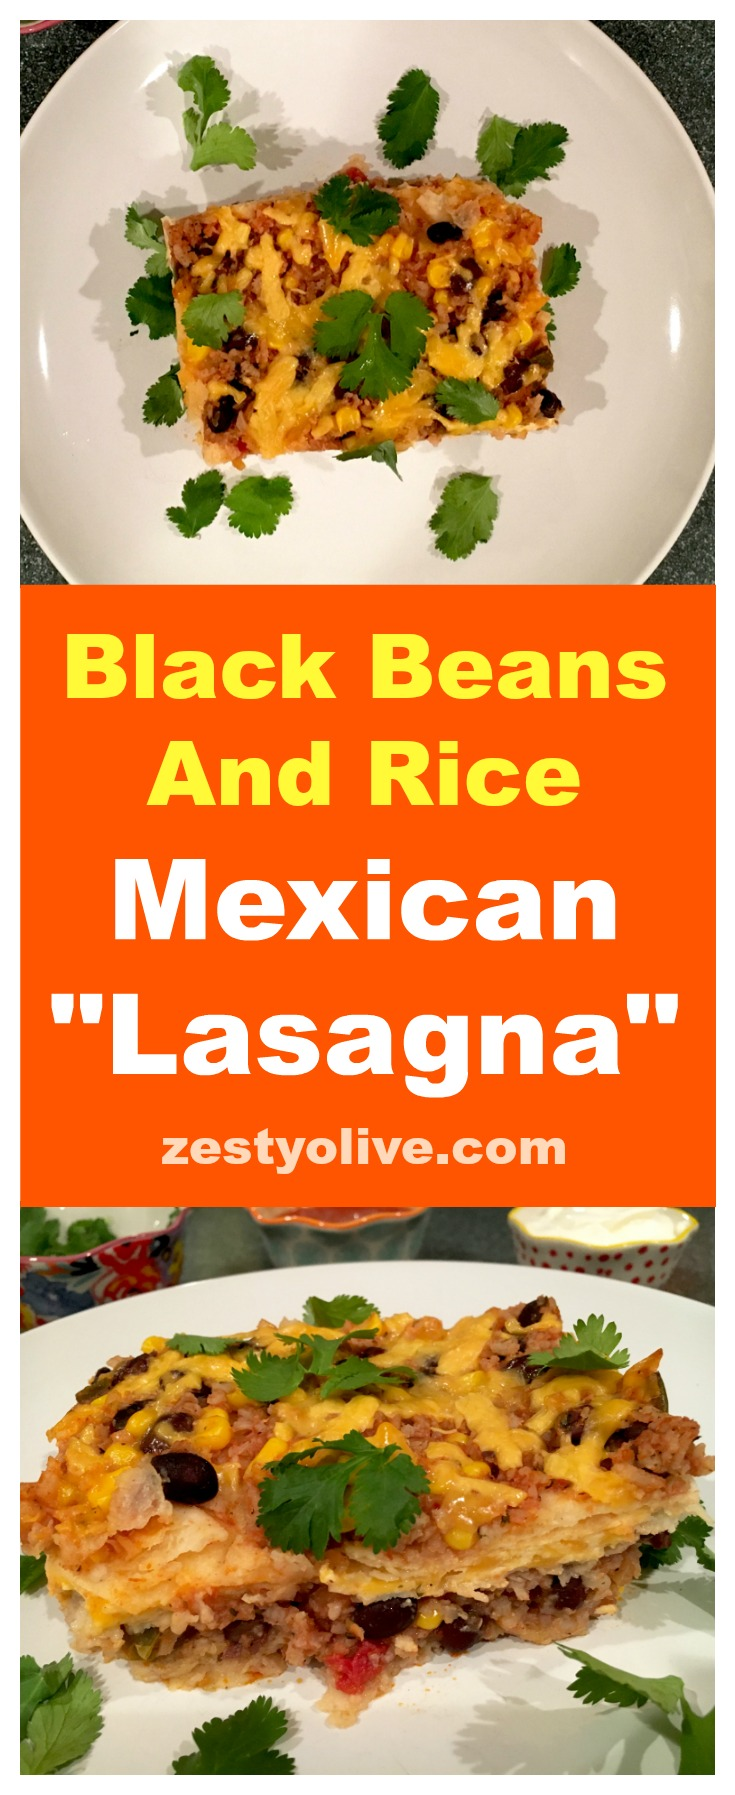 This Black Beans And Rice Mexican Lasagna is simple, healthy, yummy and family-approved!